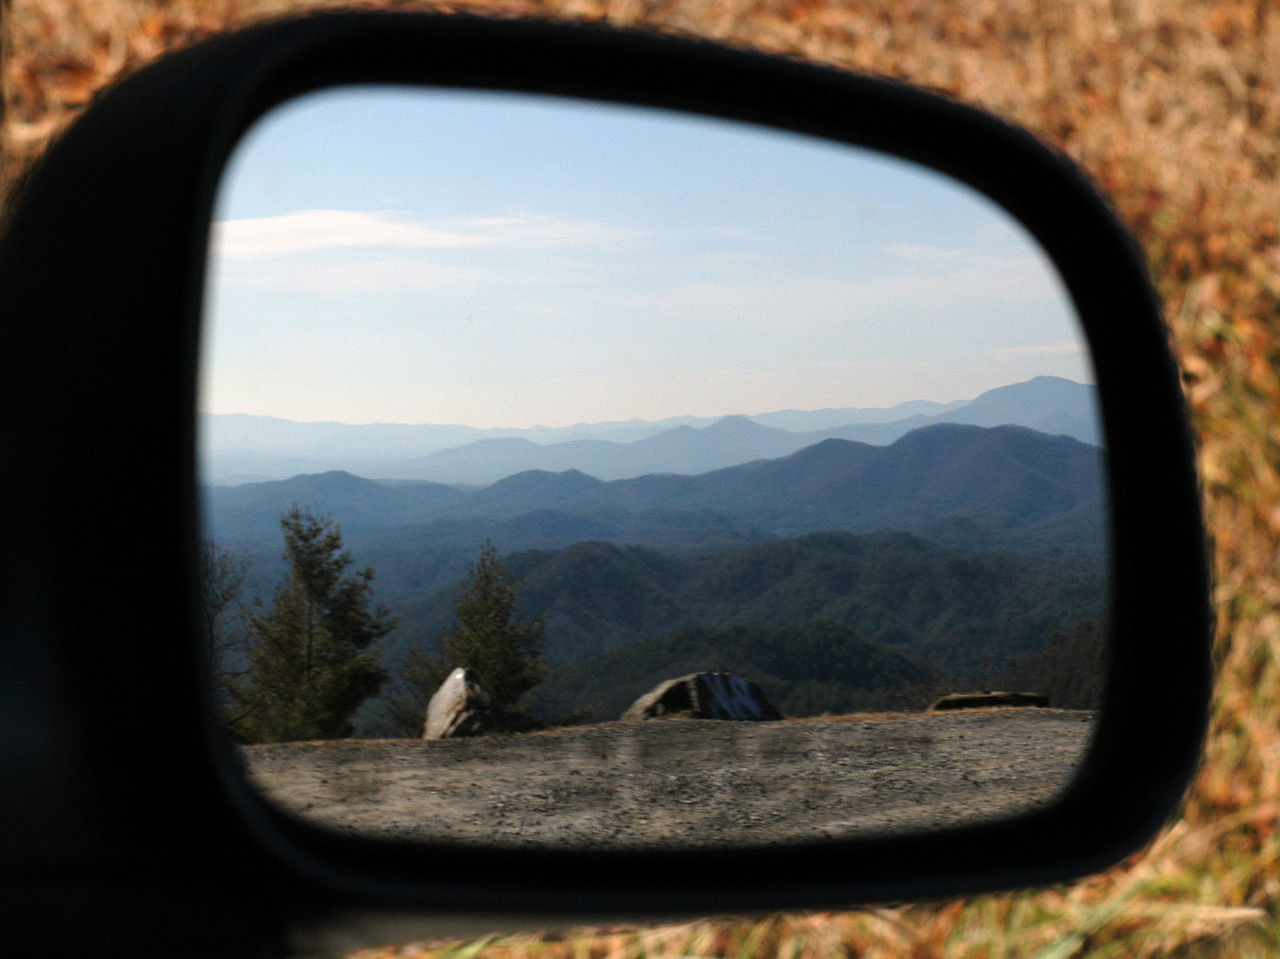 Cohutta Cohutta Wilderness Mirror Mountains In Mirro Mountains Mirro Mtns Mtns In Mirror Rearview Rearview Mirror Reflection